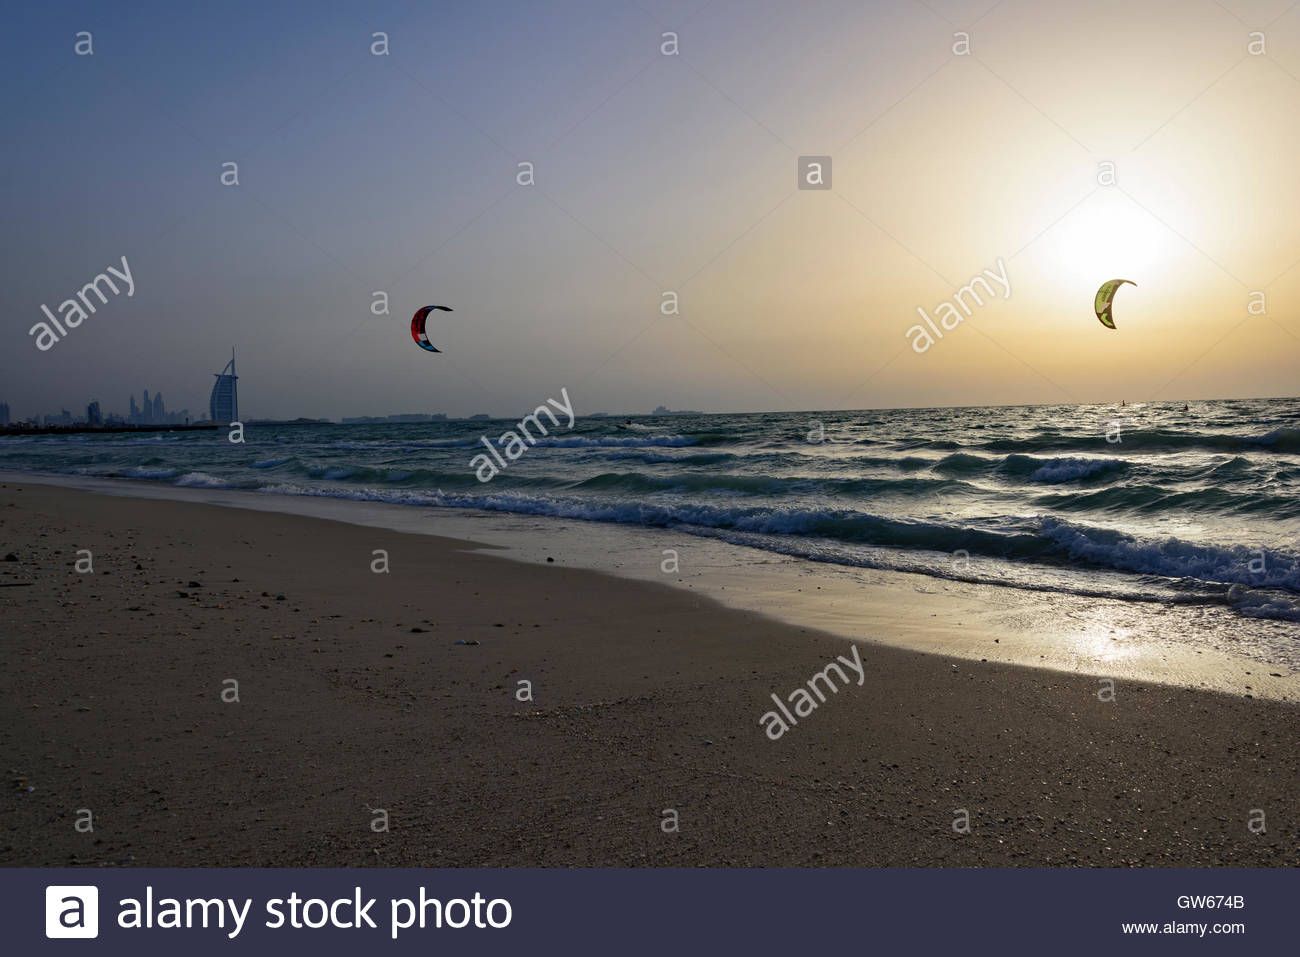 Kite Surf in Dubai with the famous Burj Al Arab hotel in background. Picture taken during a sunset. Dubai Emirates, Stock Photo